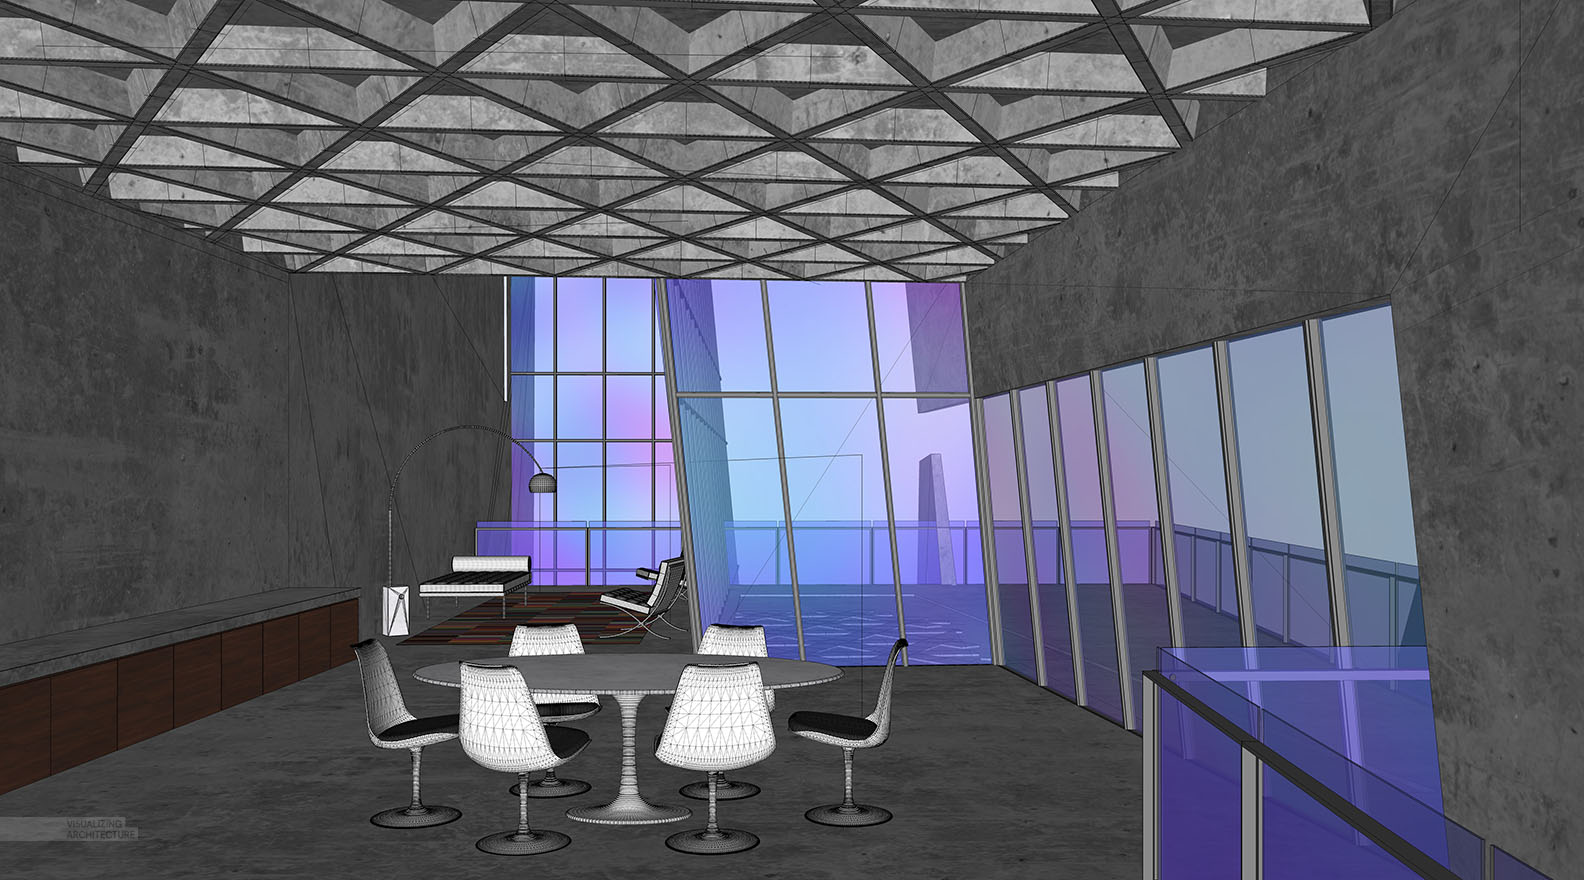 cliff_interior_2_sketchup_Materials